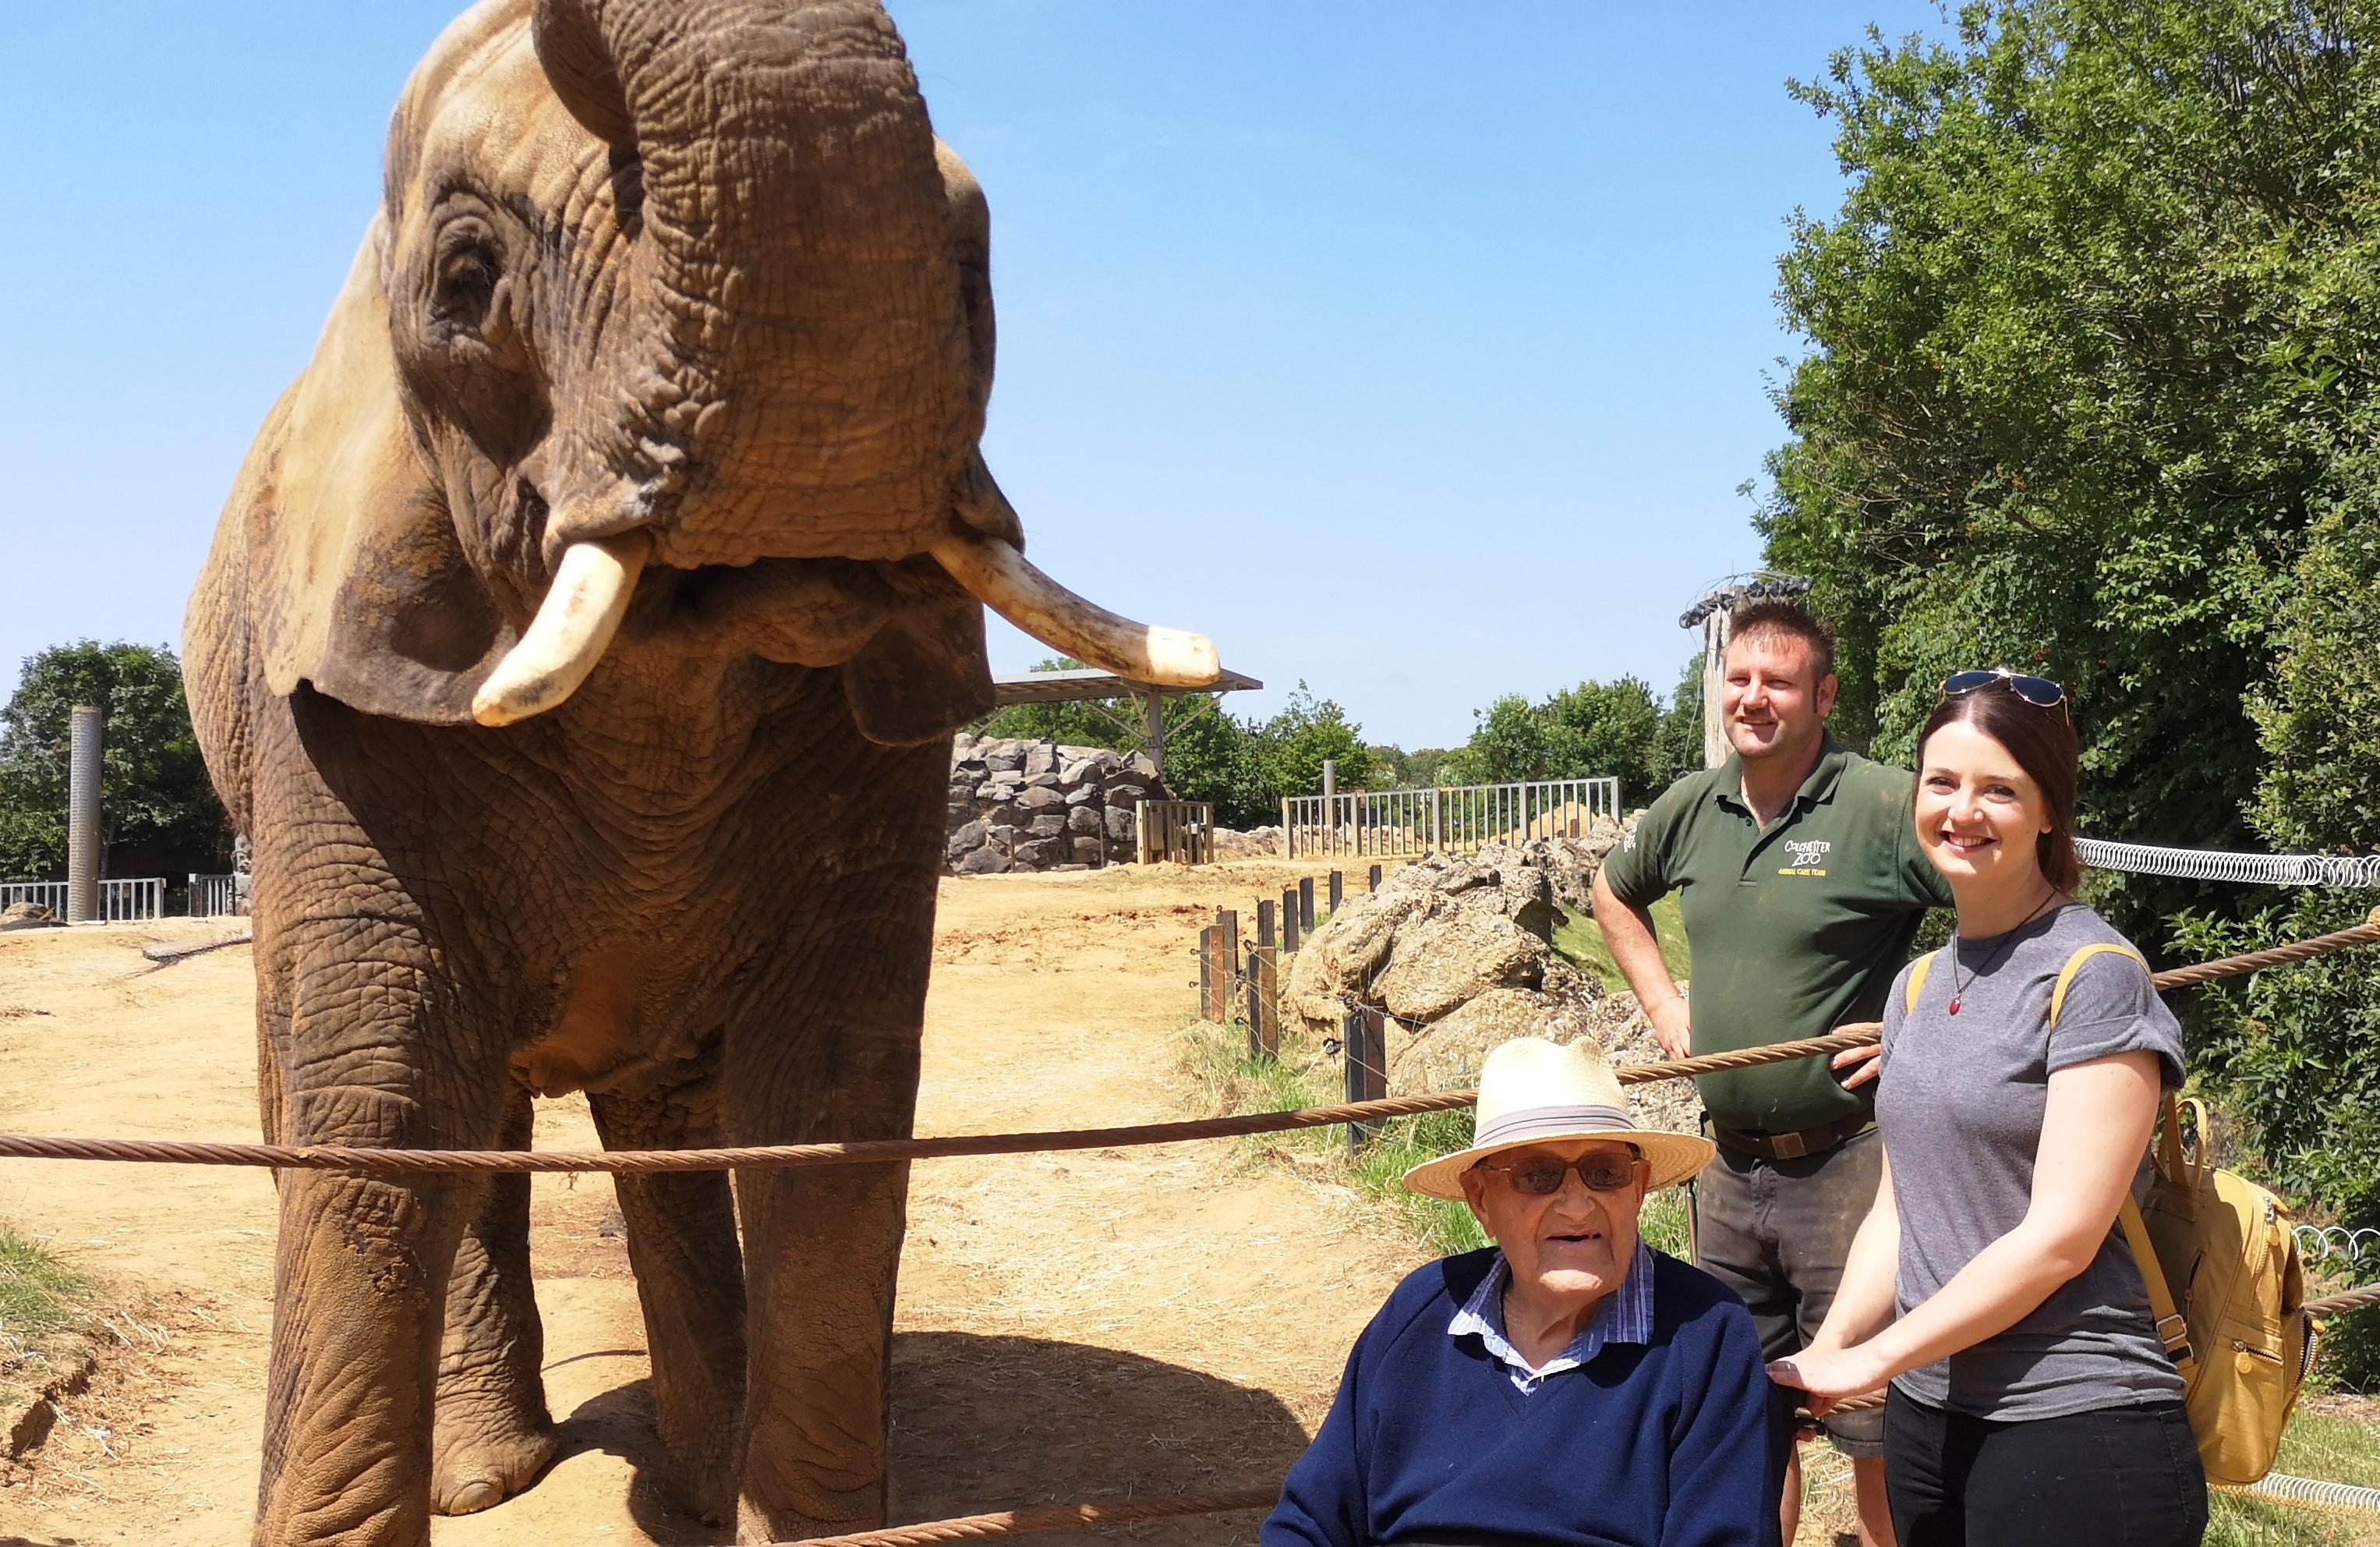 Photo of Cyril with Elephant at Colchester Zoo